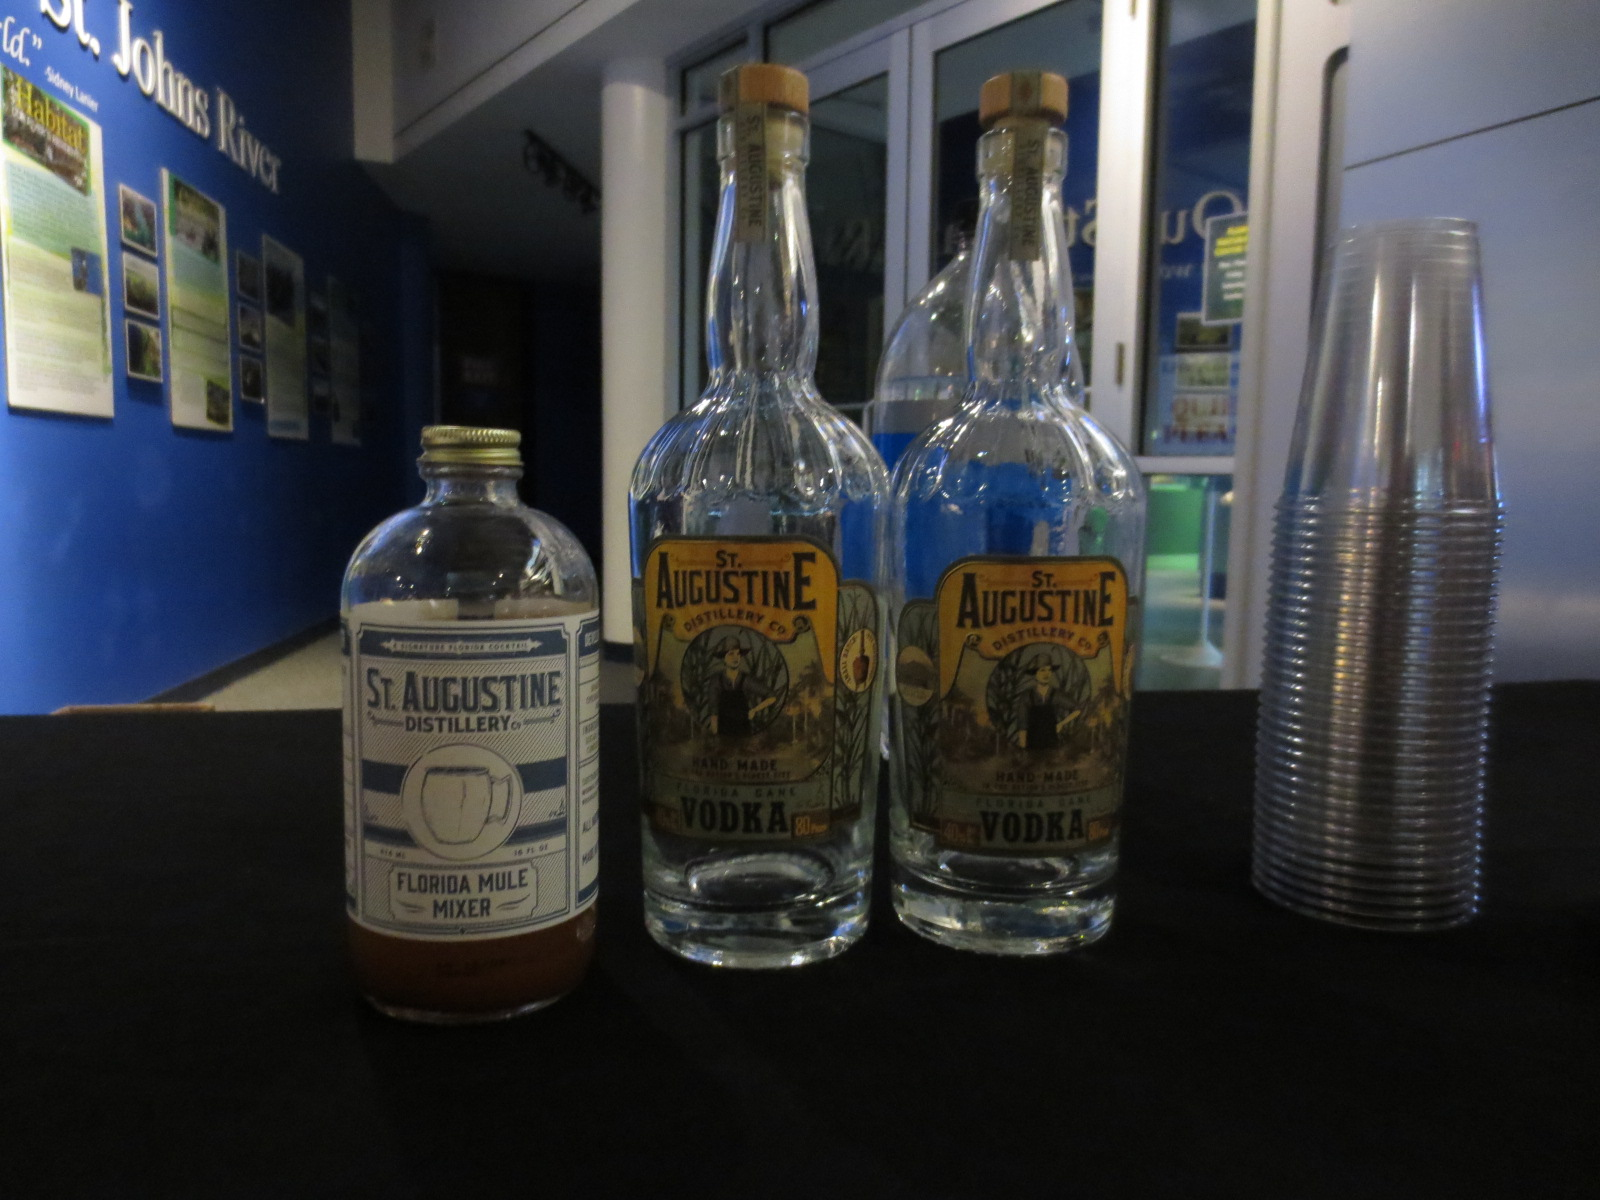 Florida Cane Vodka and Florida Mule Mixer from the St. Augustine Distillery.